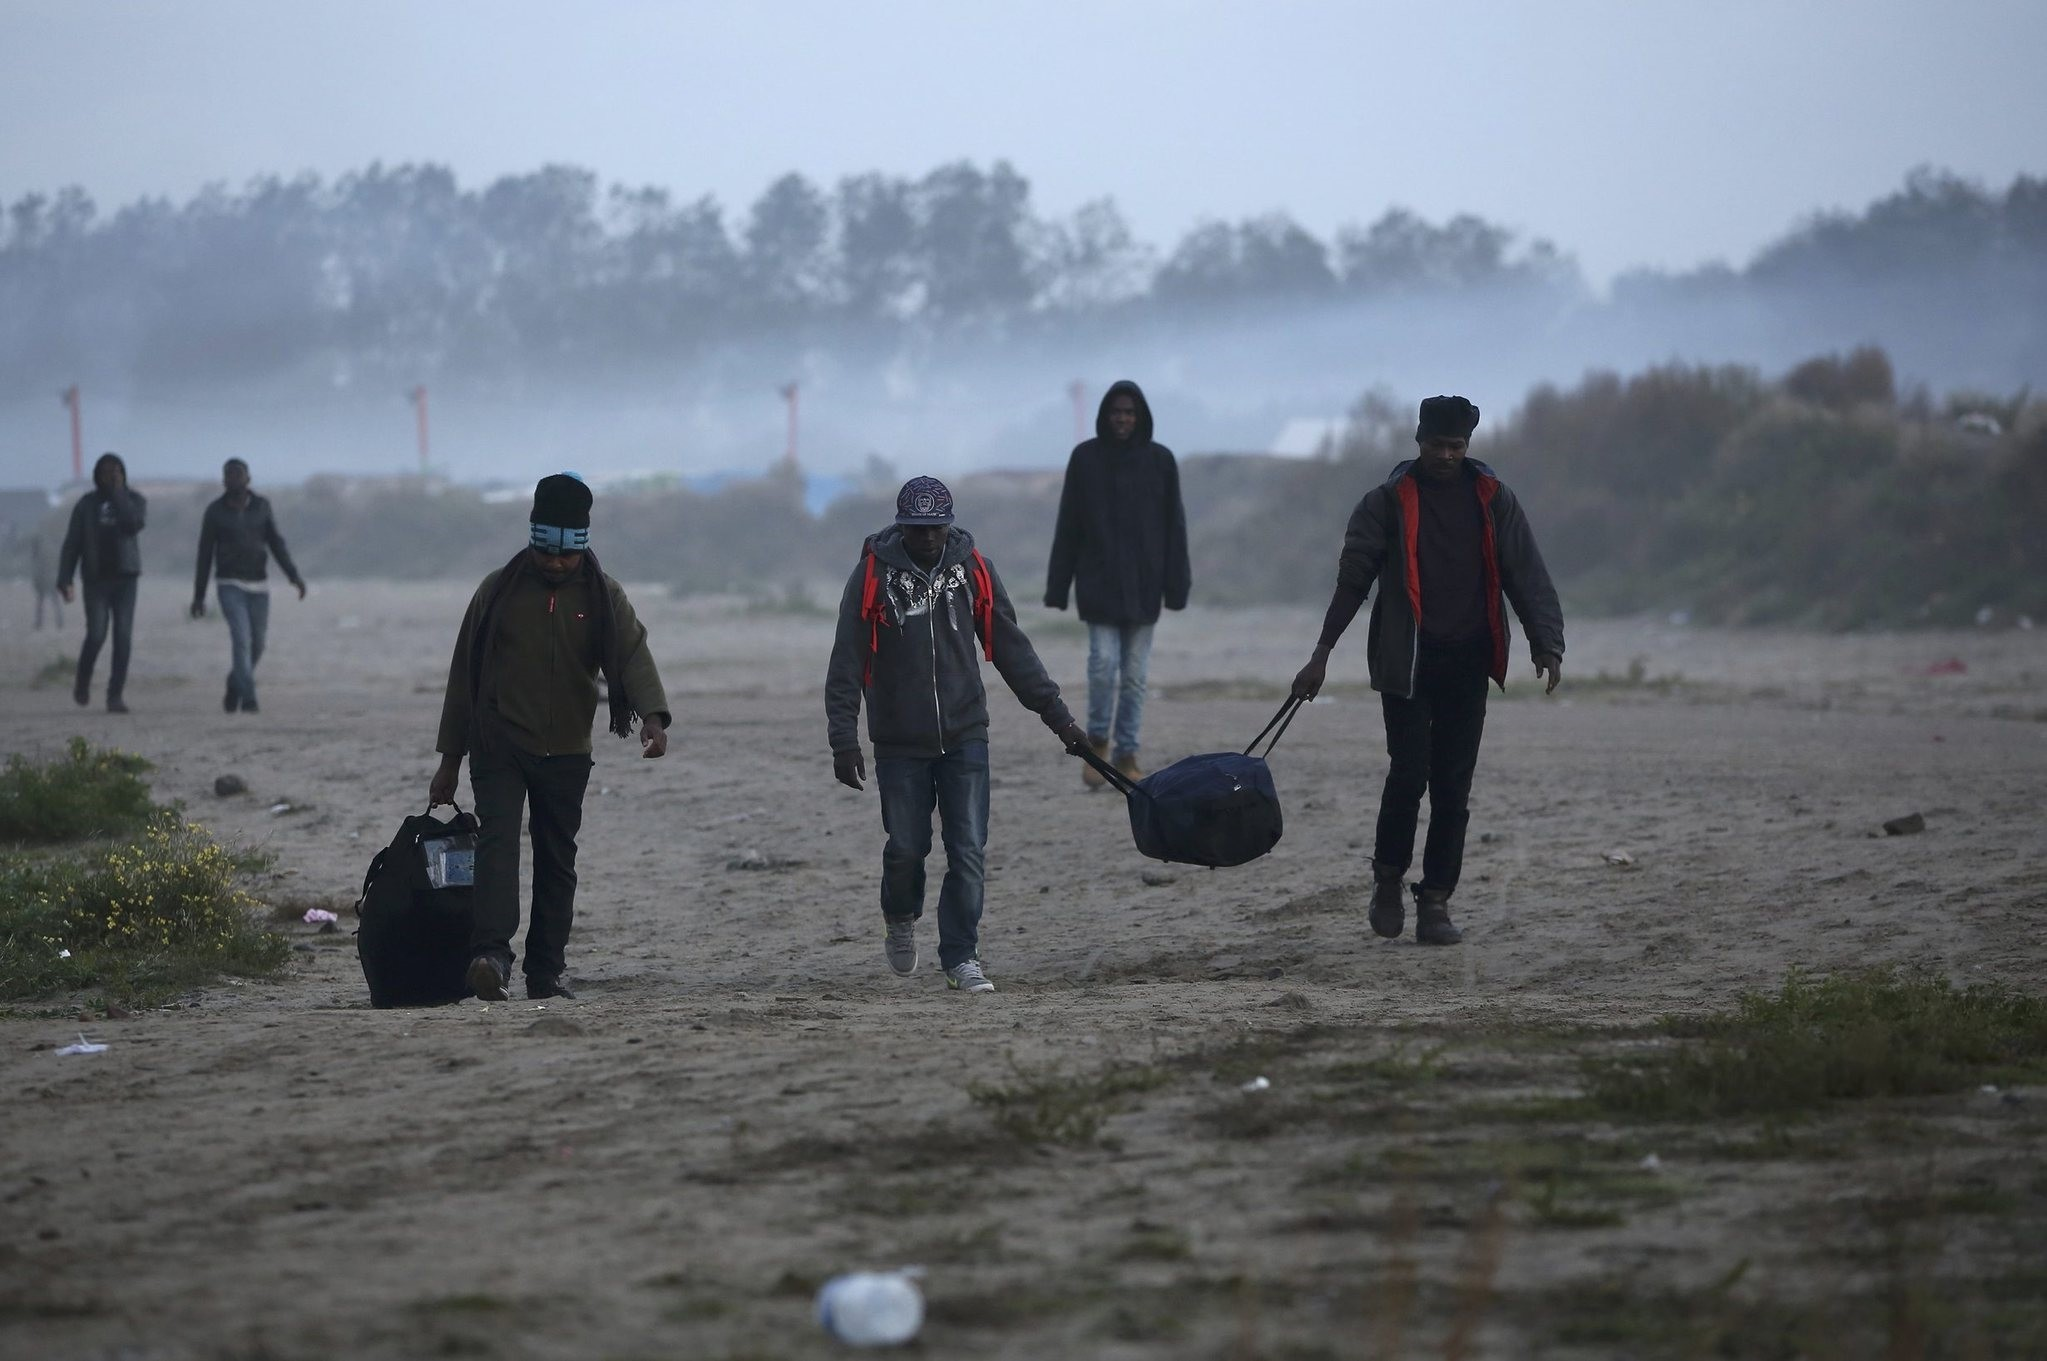 Migrants carry their belongings after evacuating a migrant camp, Calais, Oct. 25, 2016.